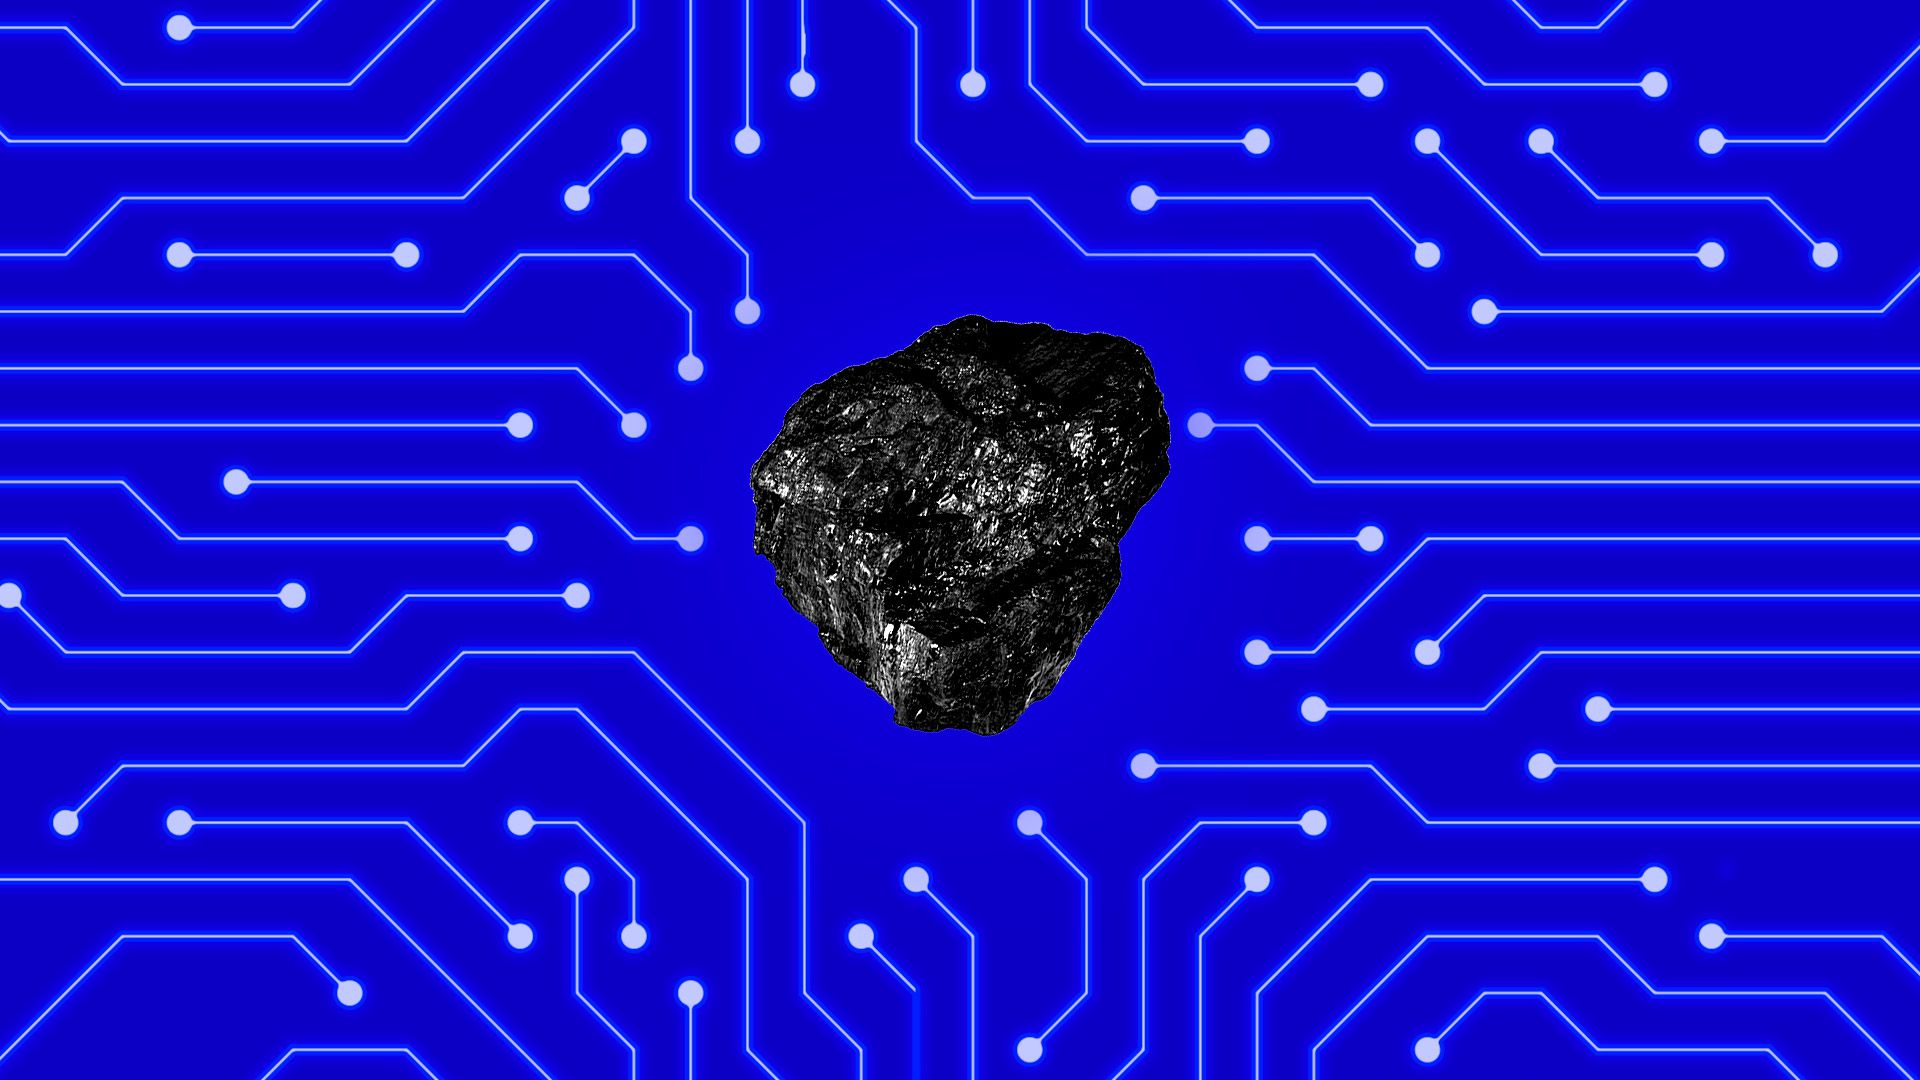 A lump of coal on top of a circuit board